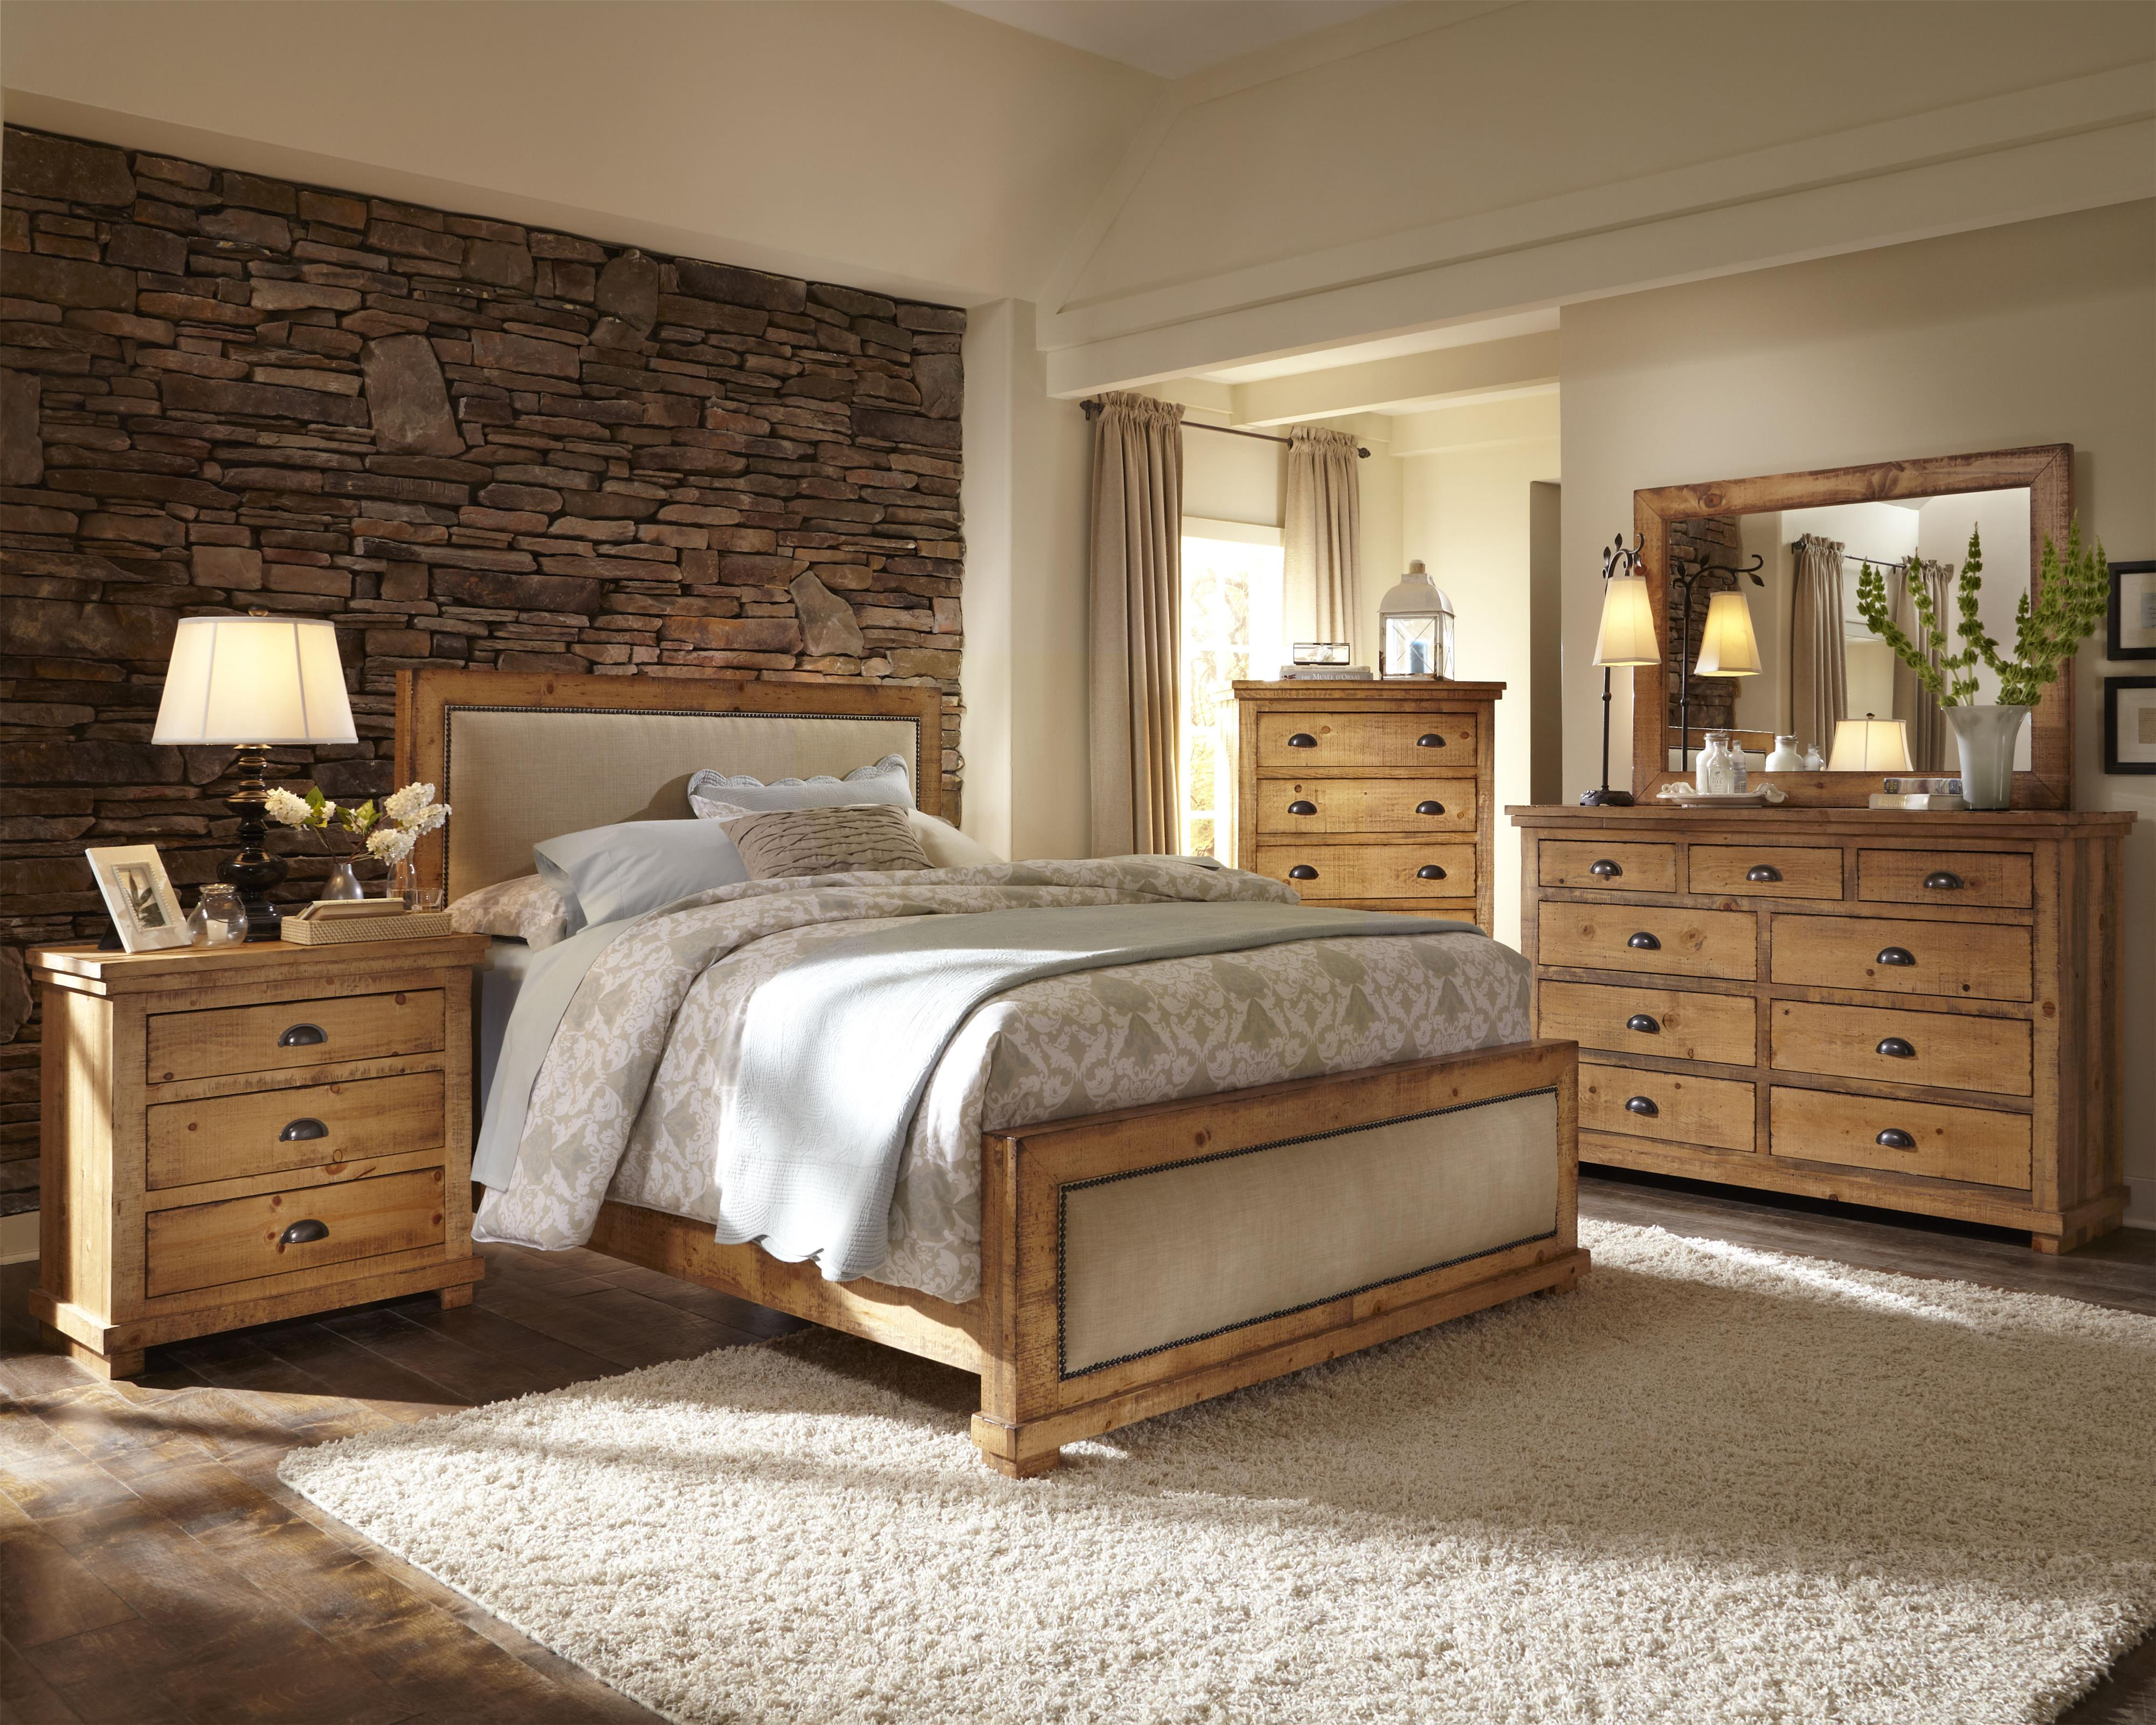 Progressive Furniture Willow Queen Bedroom Group Simply Home By Lindy S Bedroom Groups